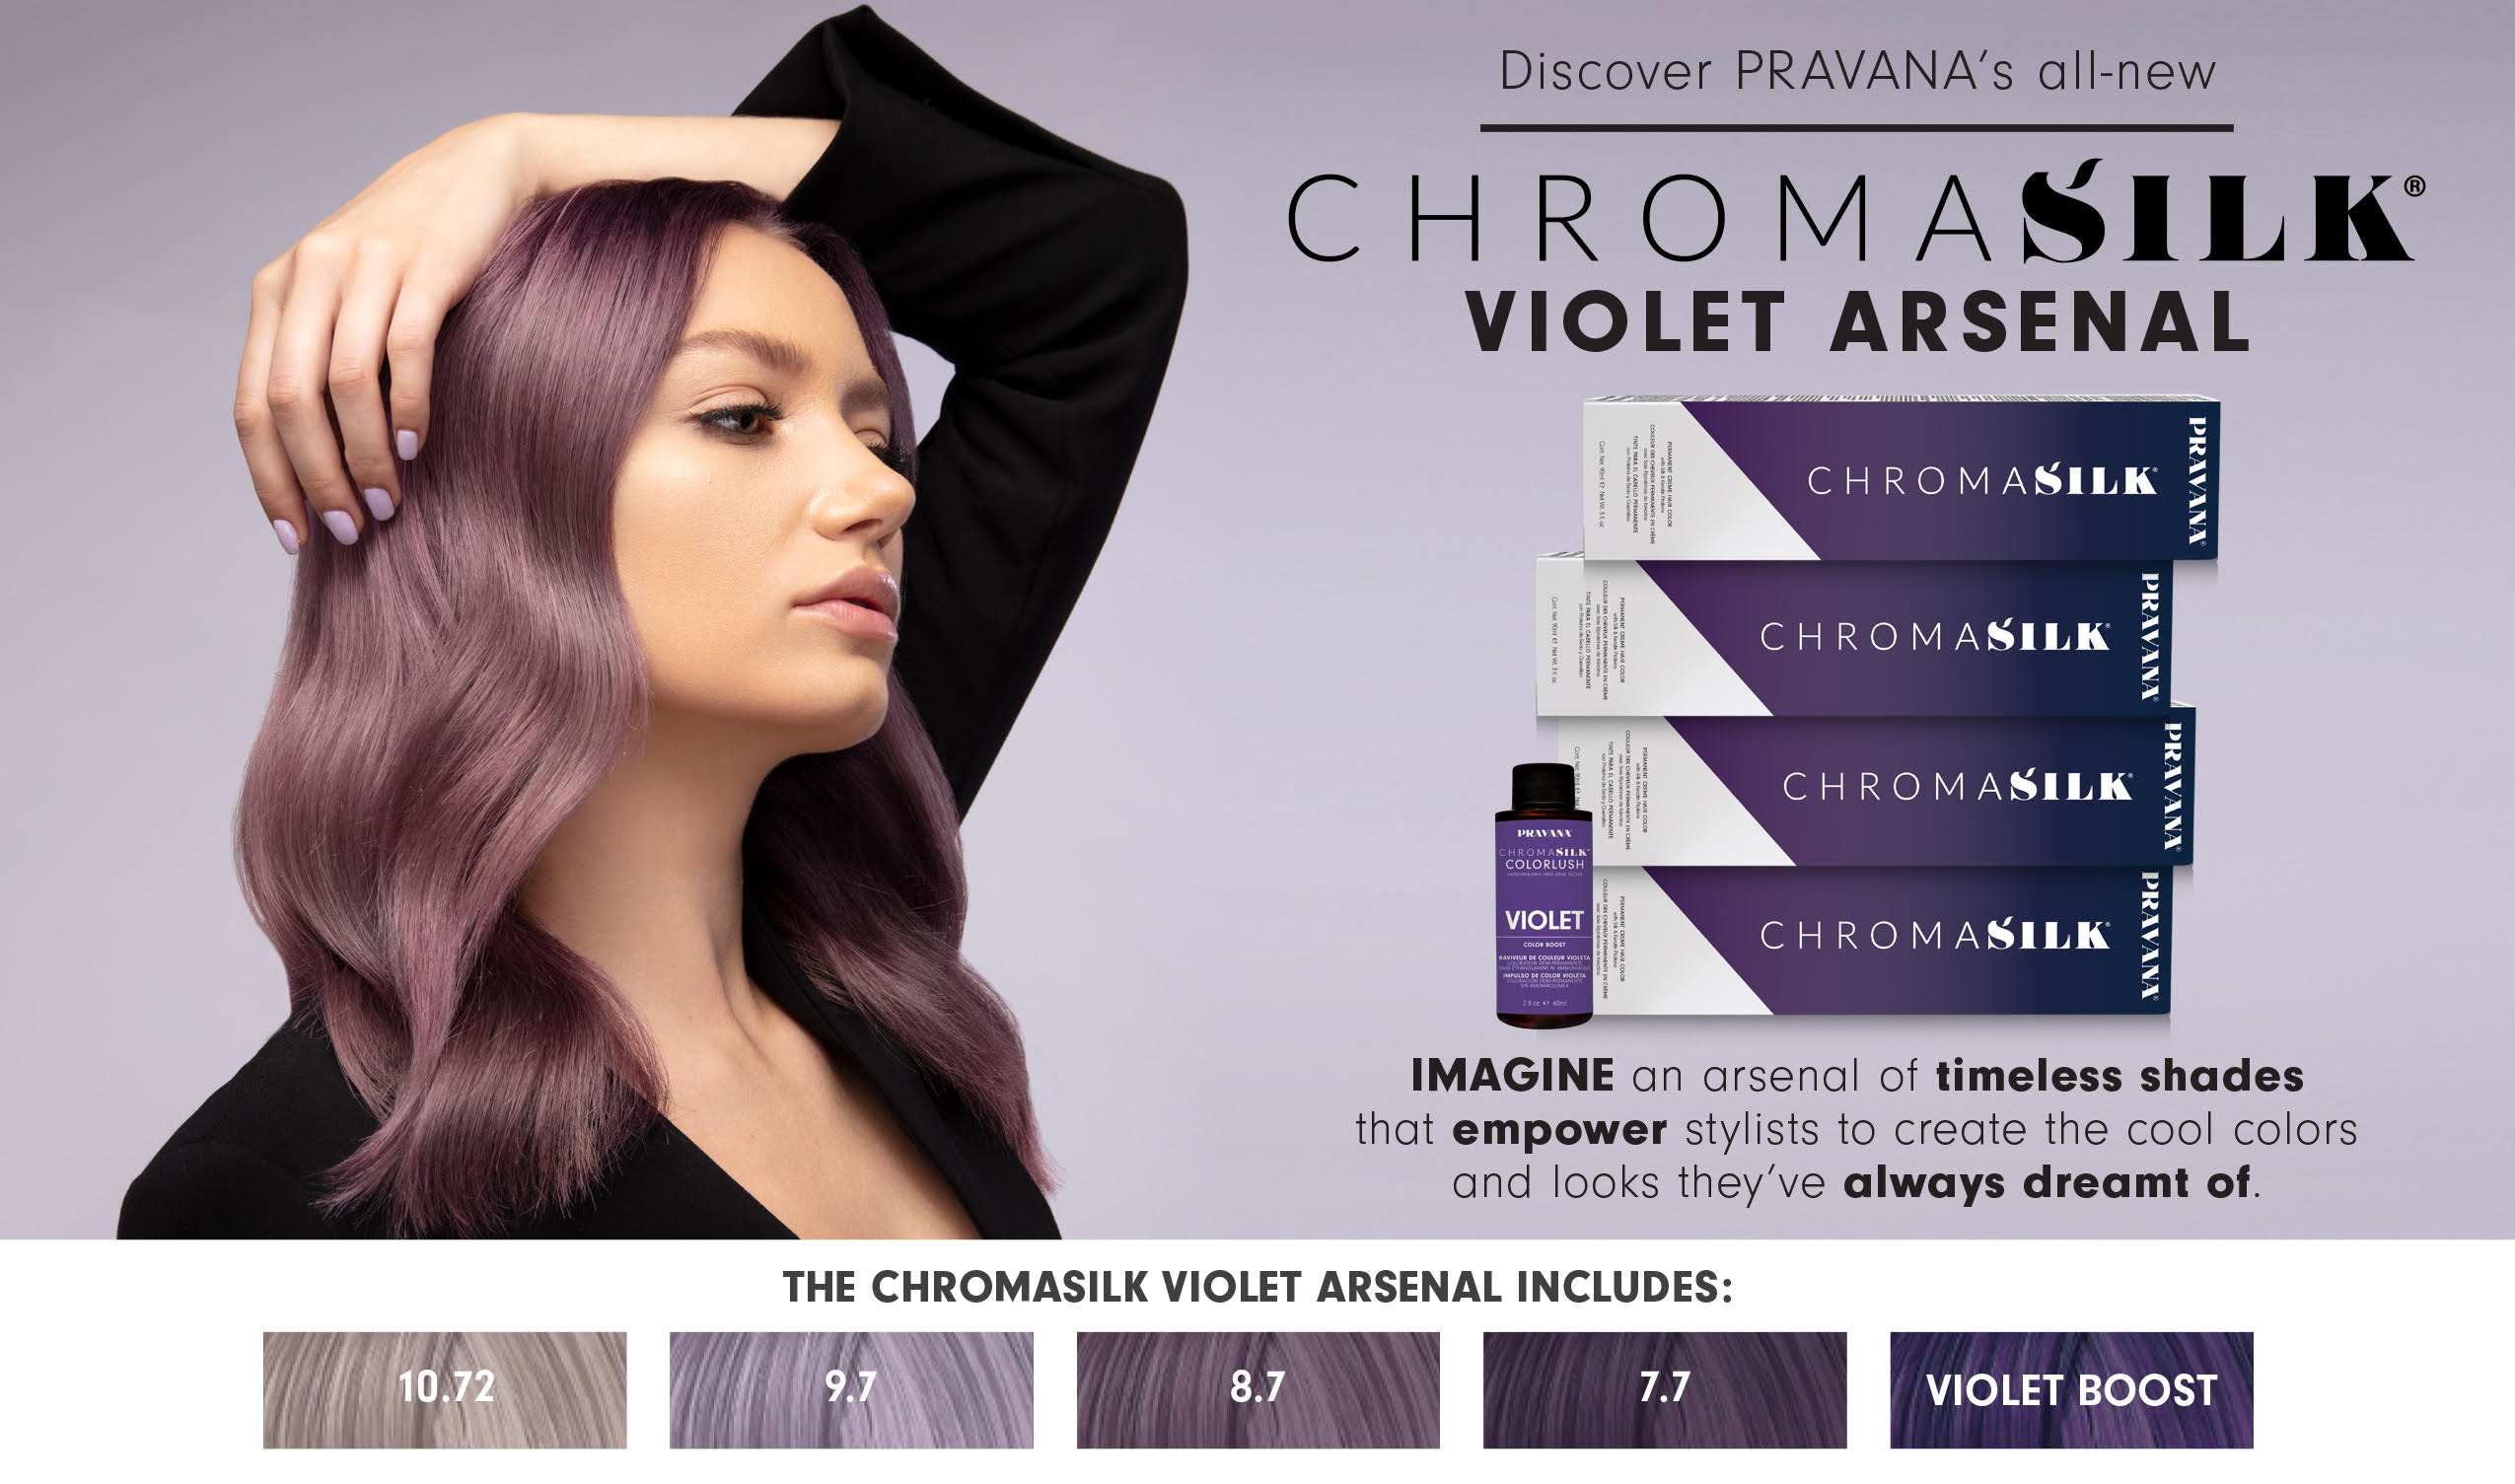 Discover PRAVANA'S all-new CHROMASILK VIOLET ARSENAL